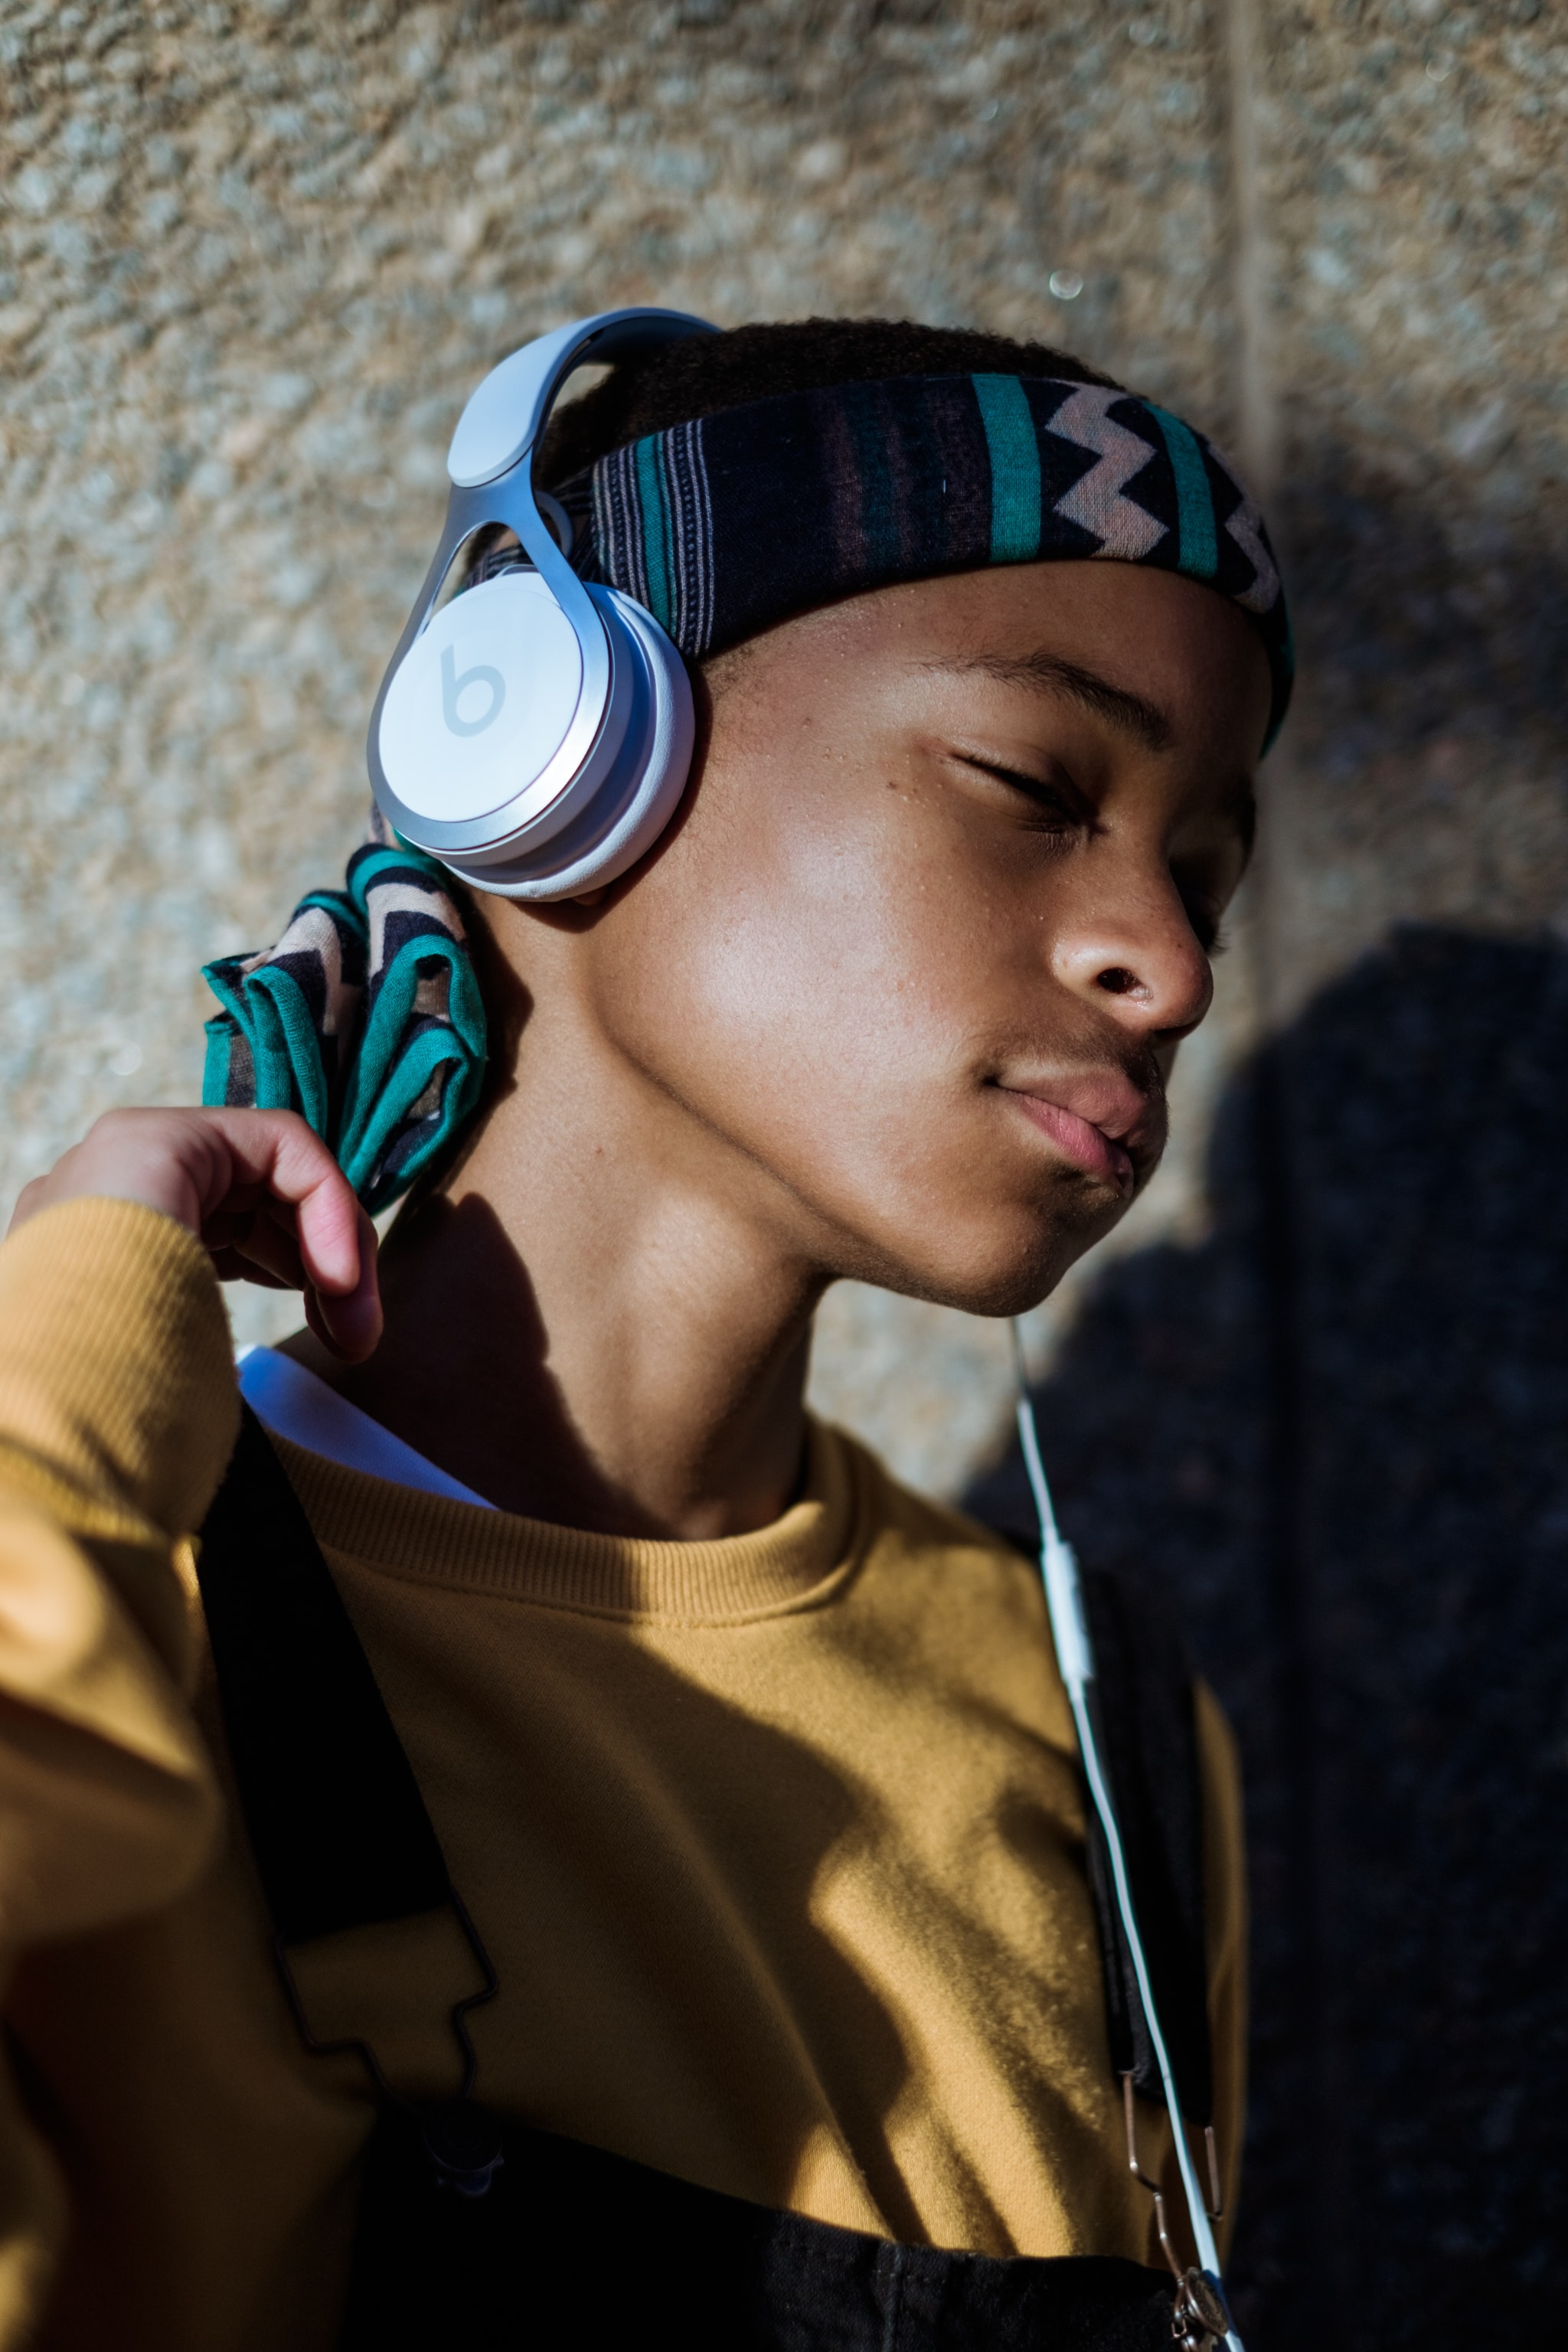 boy listening headphones